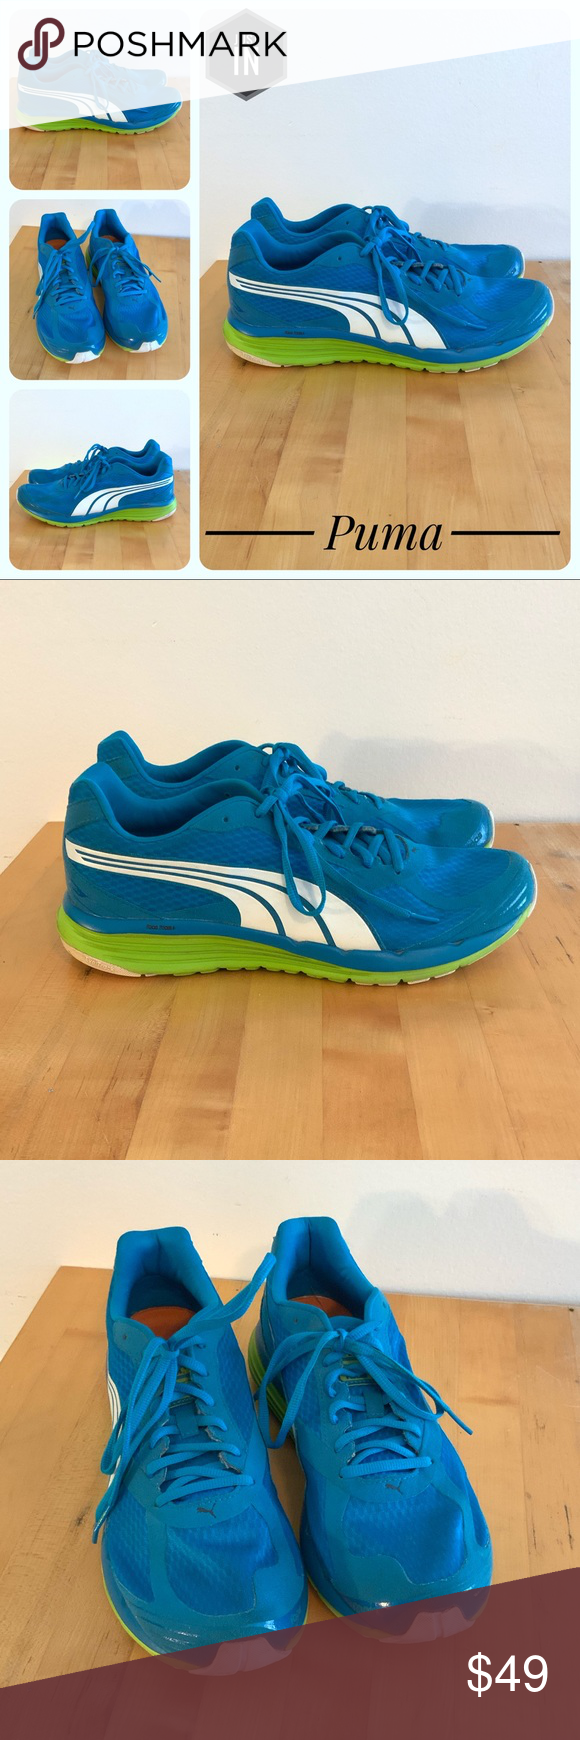 Puma 1000 S Ignite Running Shoes Size